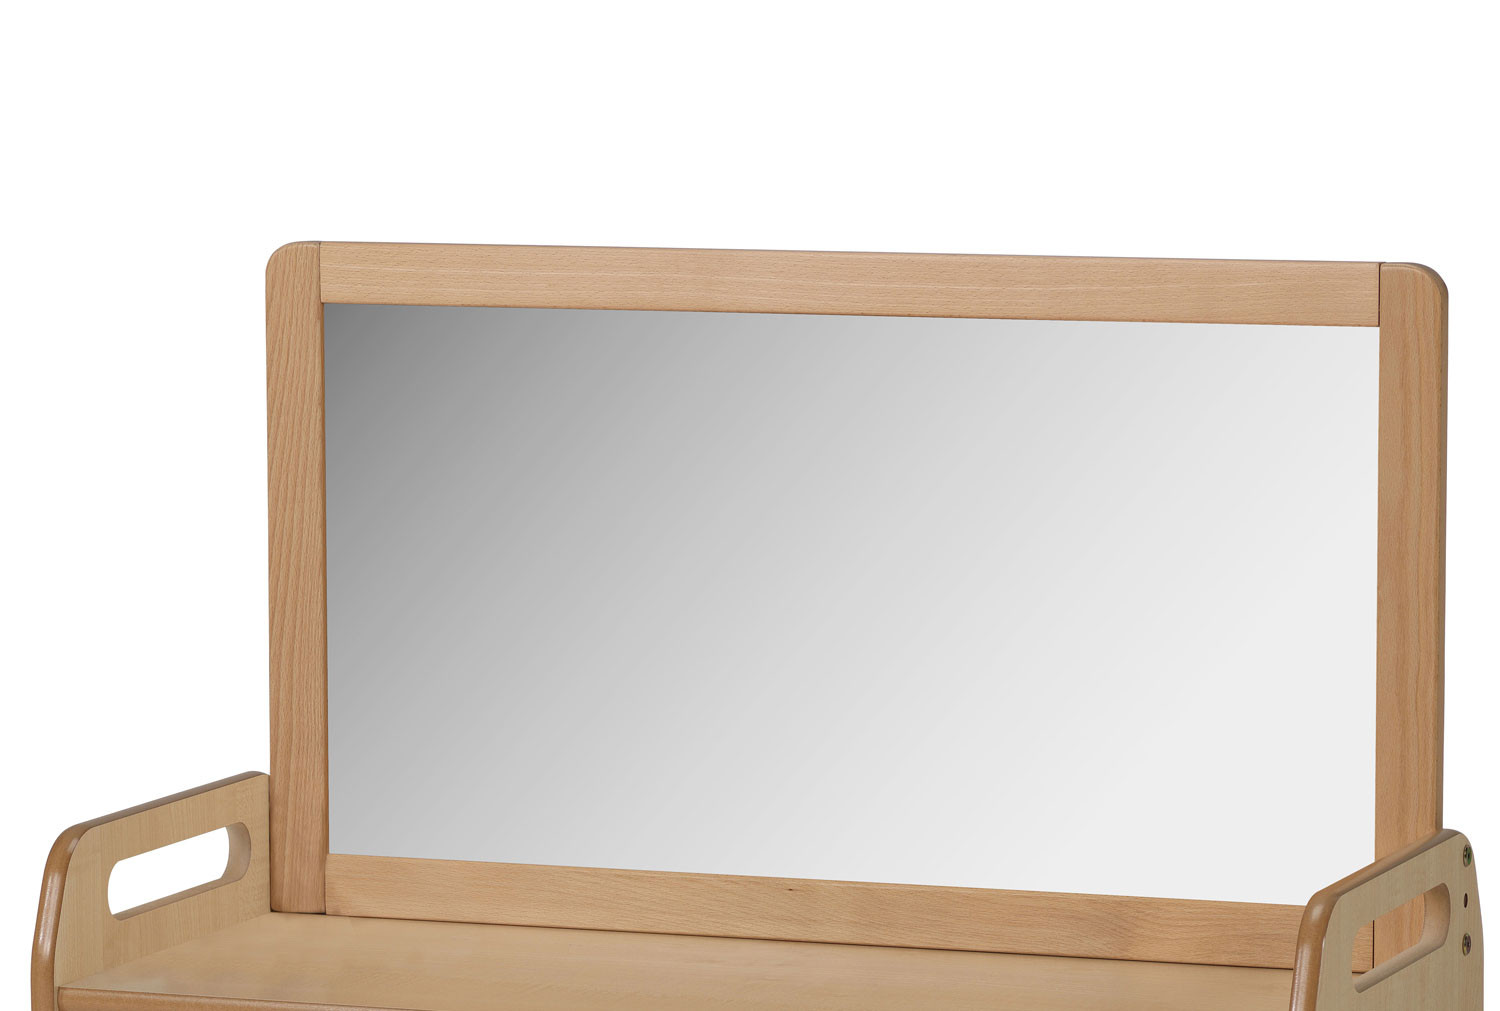 Playscapes Double Sided Mirror Add-On